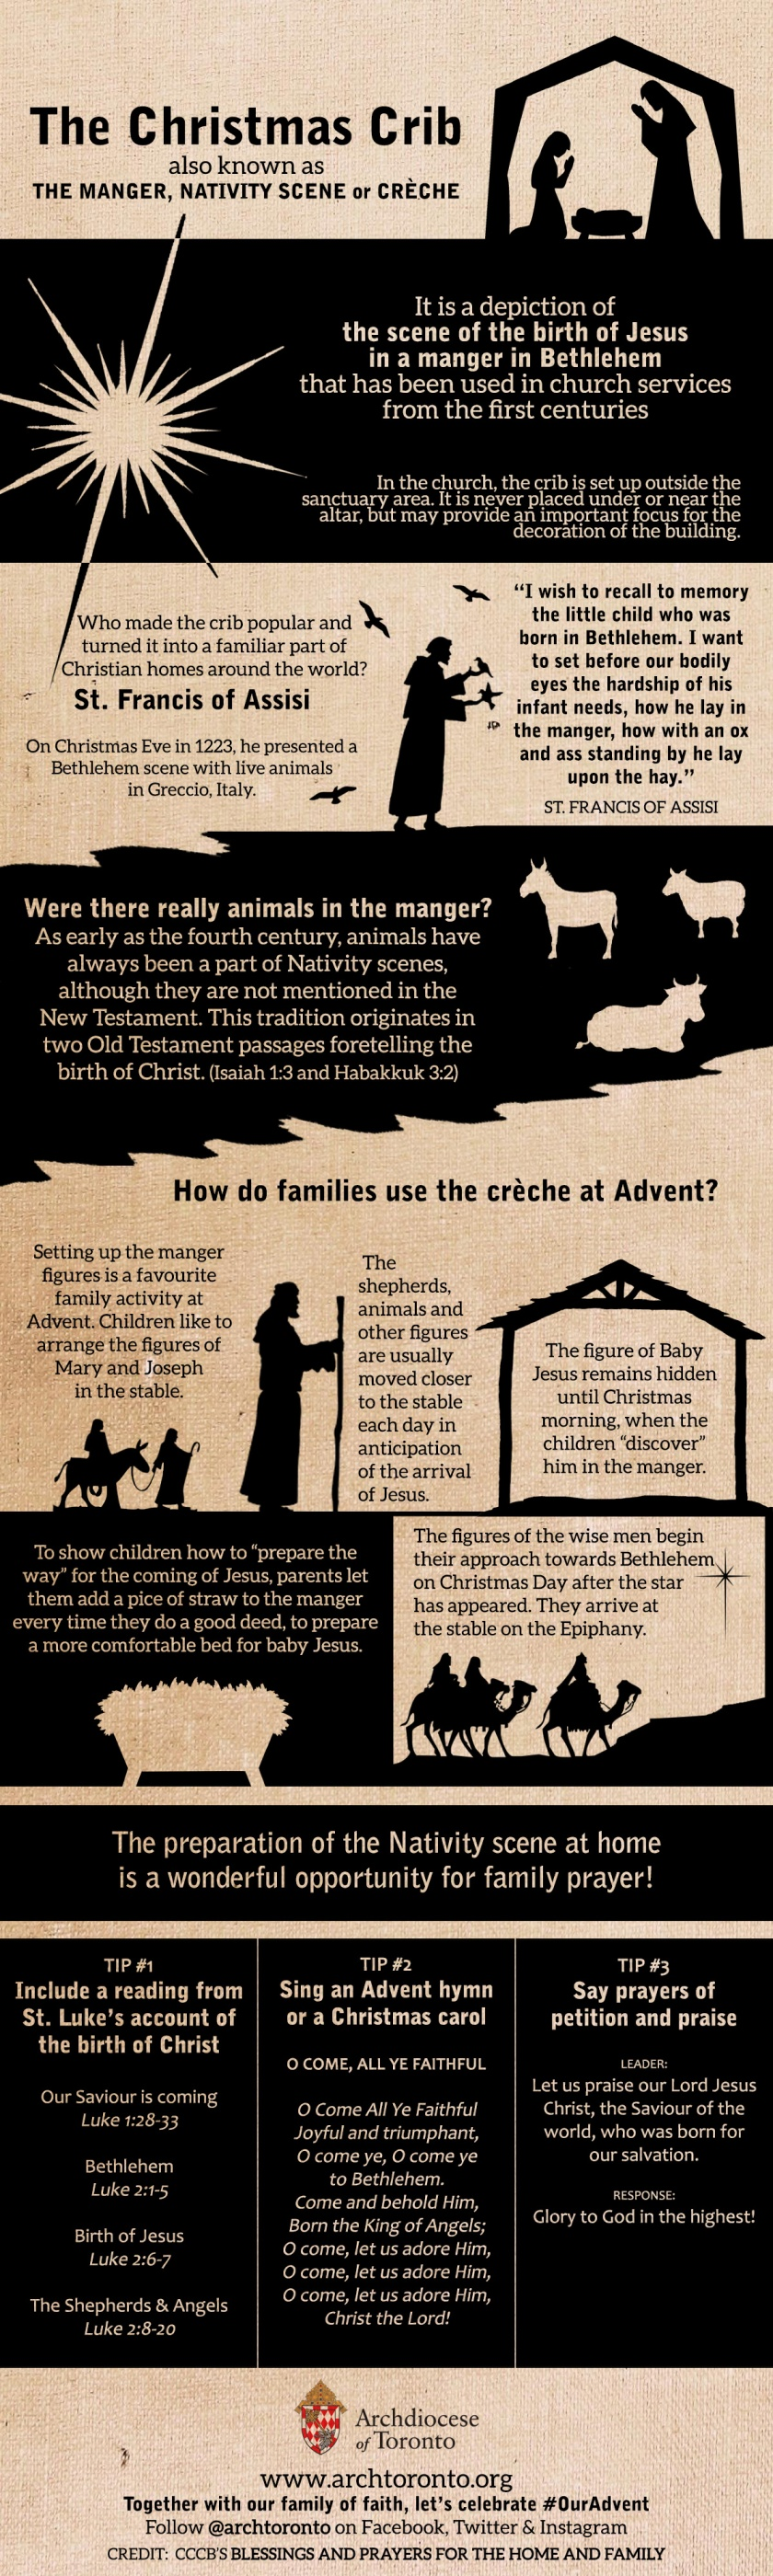 B. st francis and the crib info